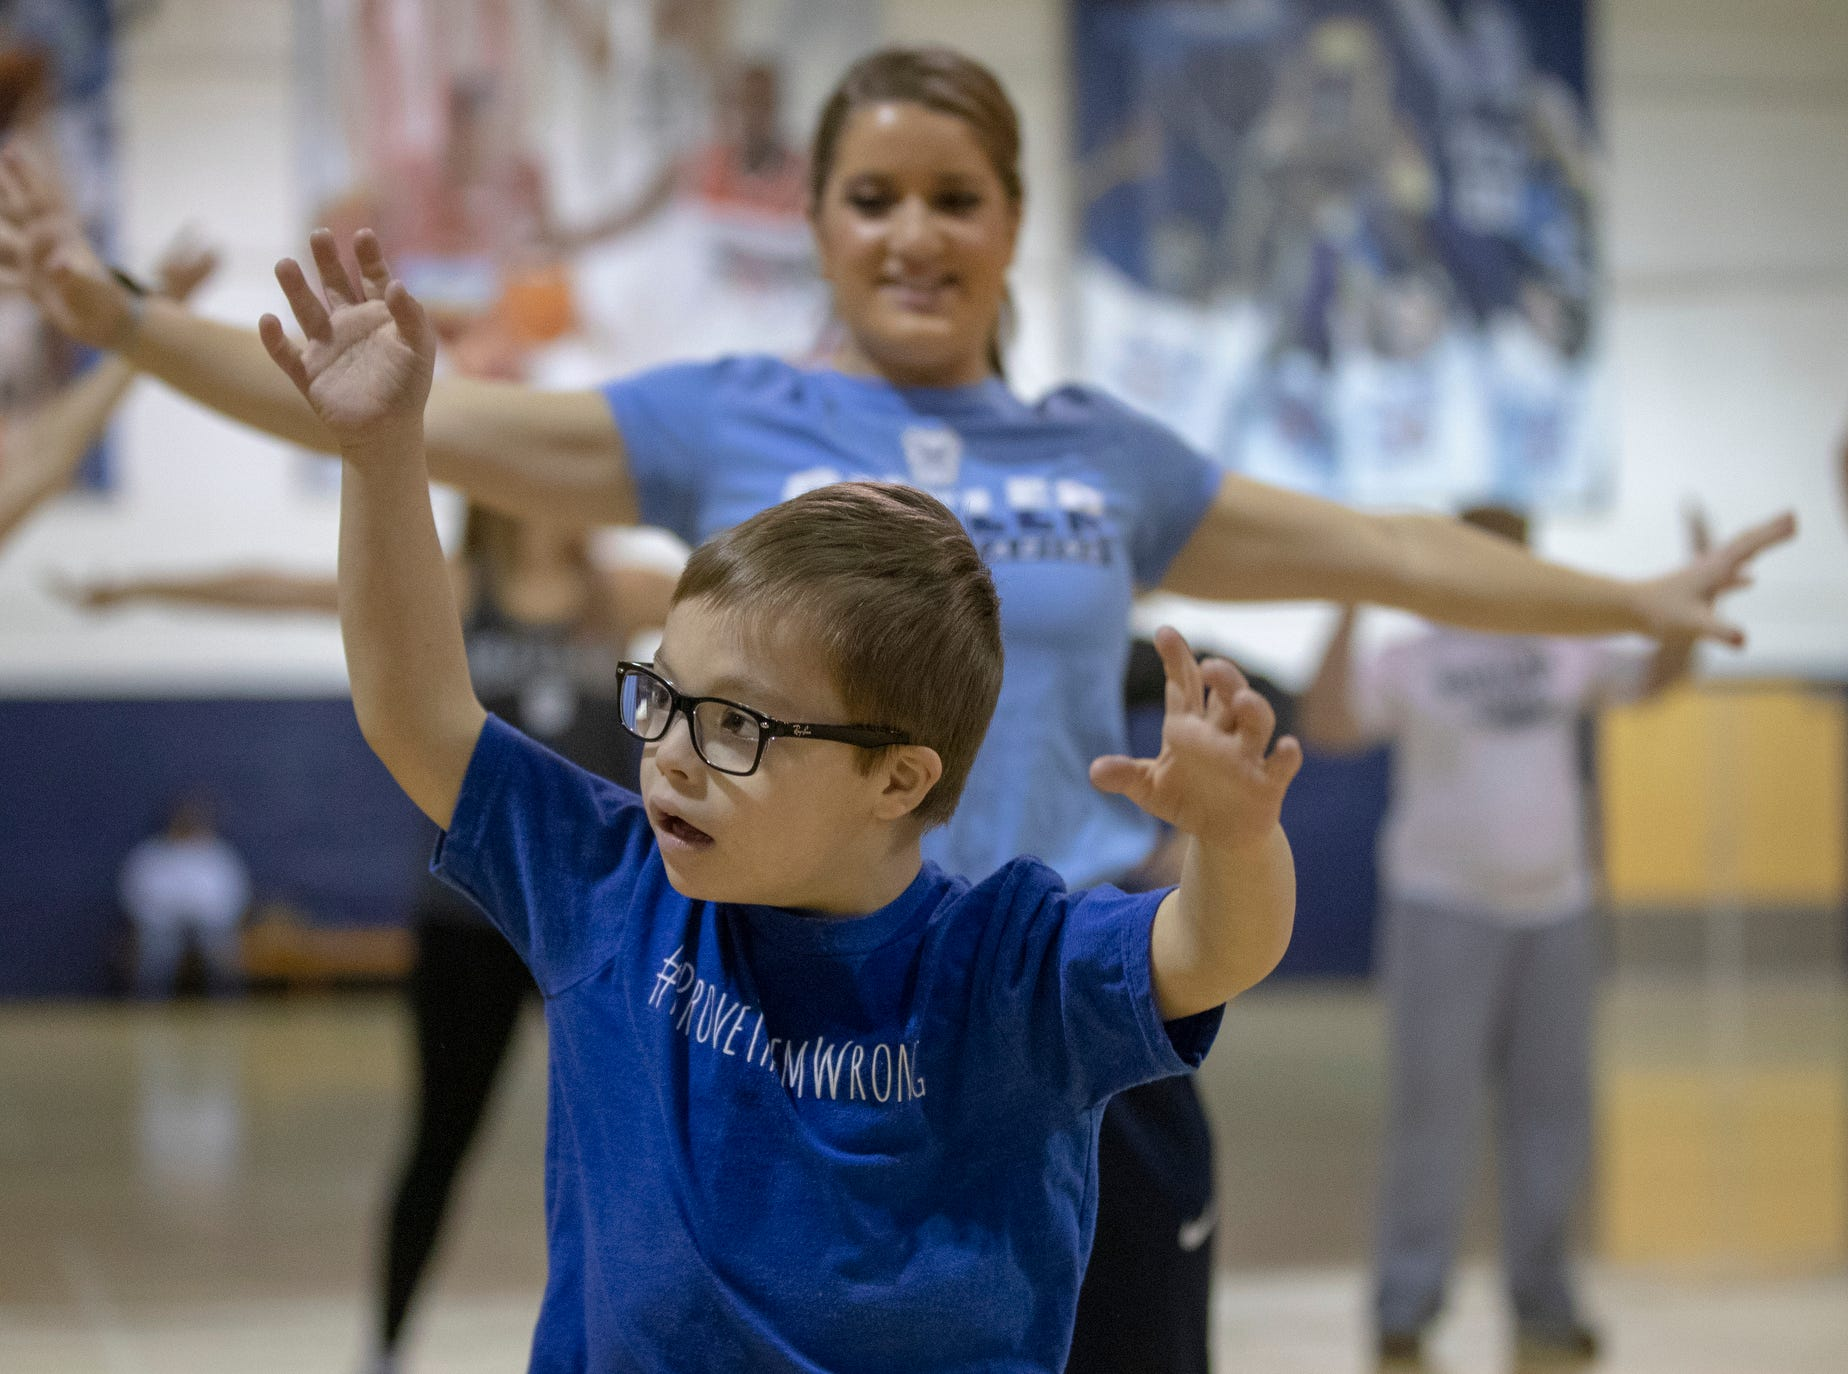 Will Meehan, 6, Fishers, learns a special halftime performance before the Butler women's basketball game at Hinkle Fieldhouse, Indianapolis, Sunday, Dec. 2, 2018. Butler cheer and dance groups paired up with physical therapy students from Indiana University to teach young people with special needs a routine in preparation for the performance.